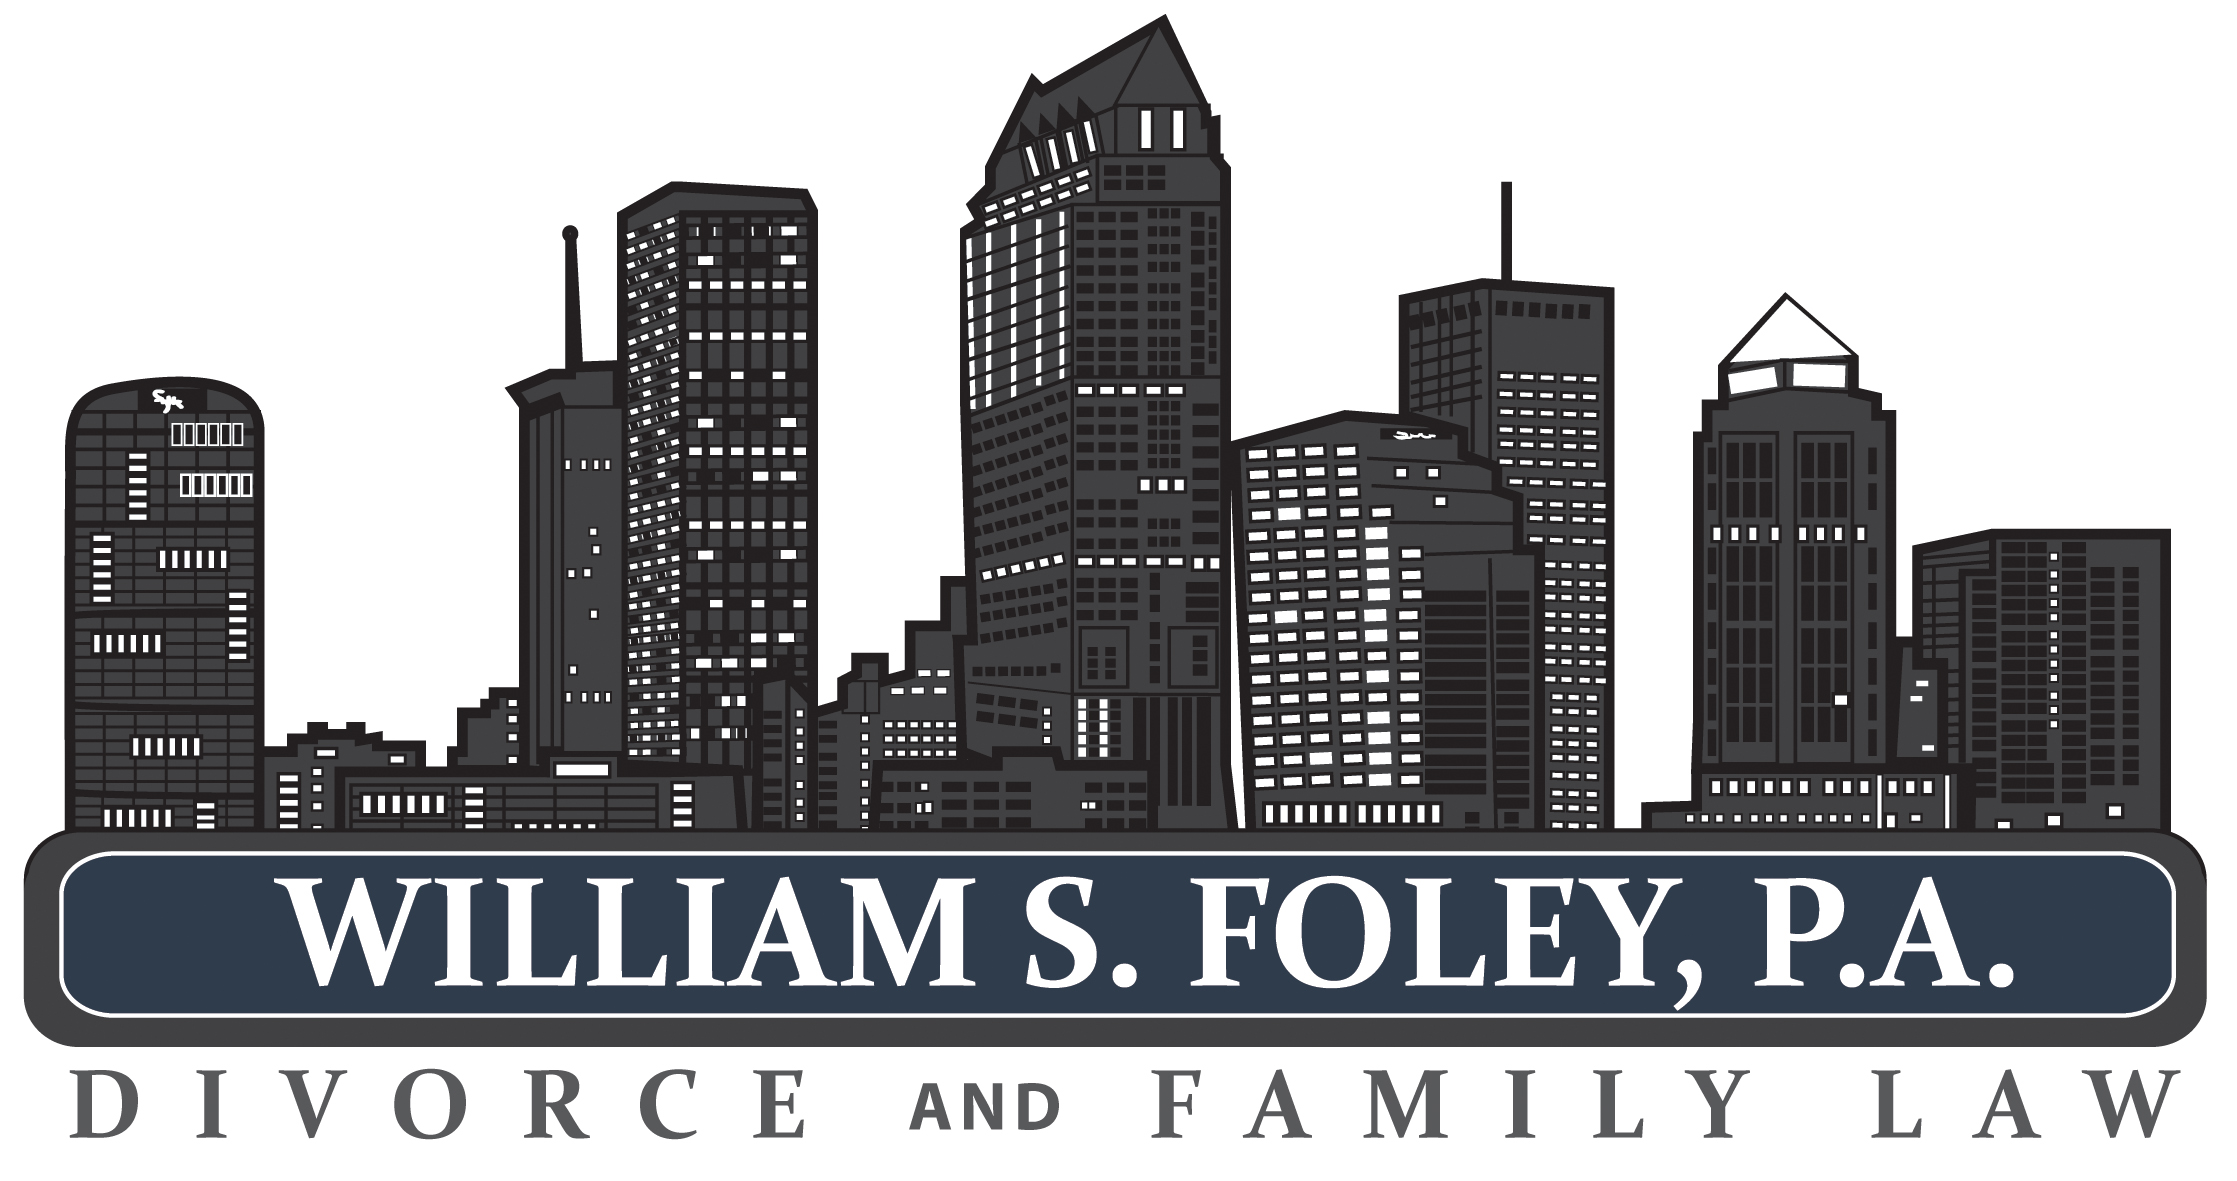 What to do when you are served with divorce papers in hillsborough what to do when you are served with divorce papers in hillsborough county florida william s foley pa solutioingenieria Images